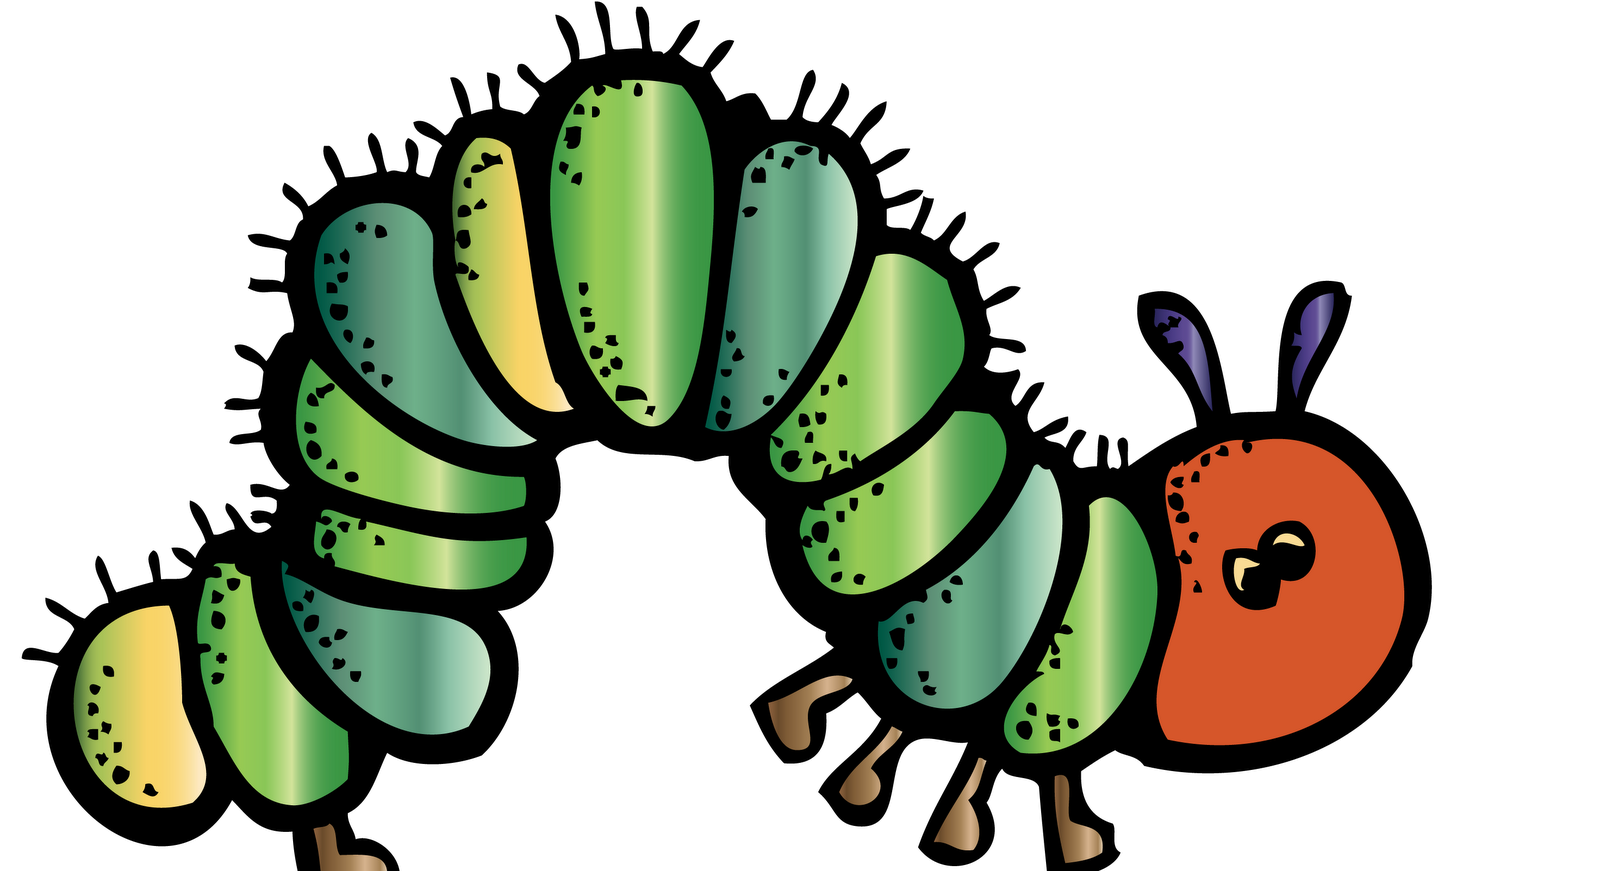 Very hungry caterpillar png black and white. Melonheadz colored cute clipart